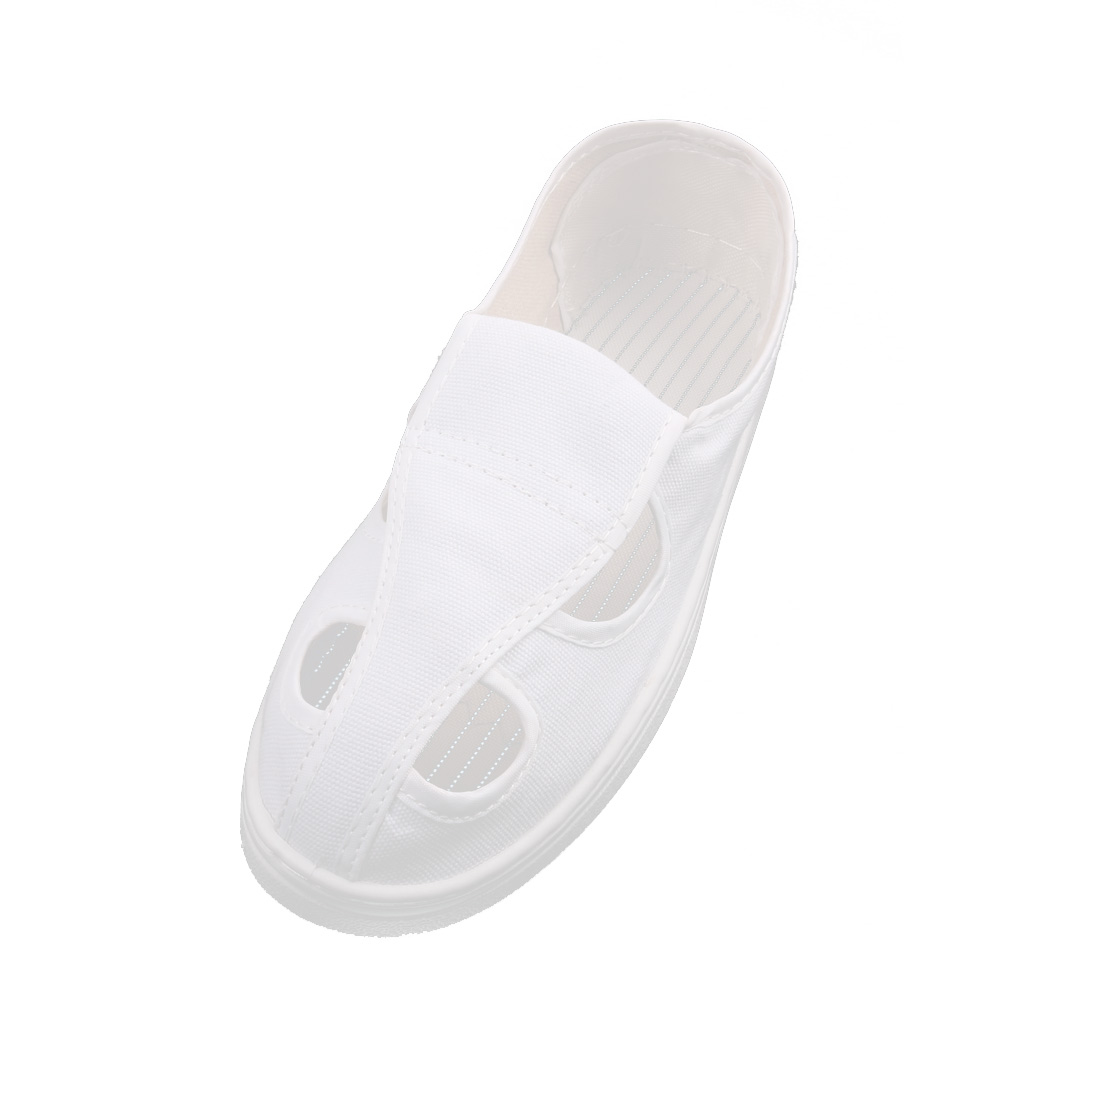 US9.5 UK8.5 EU43 PU Soft Bottom Nonslip Flat Sole Anti-static 4-Hole Canvas Shoes White